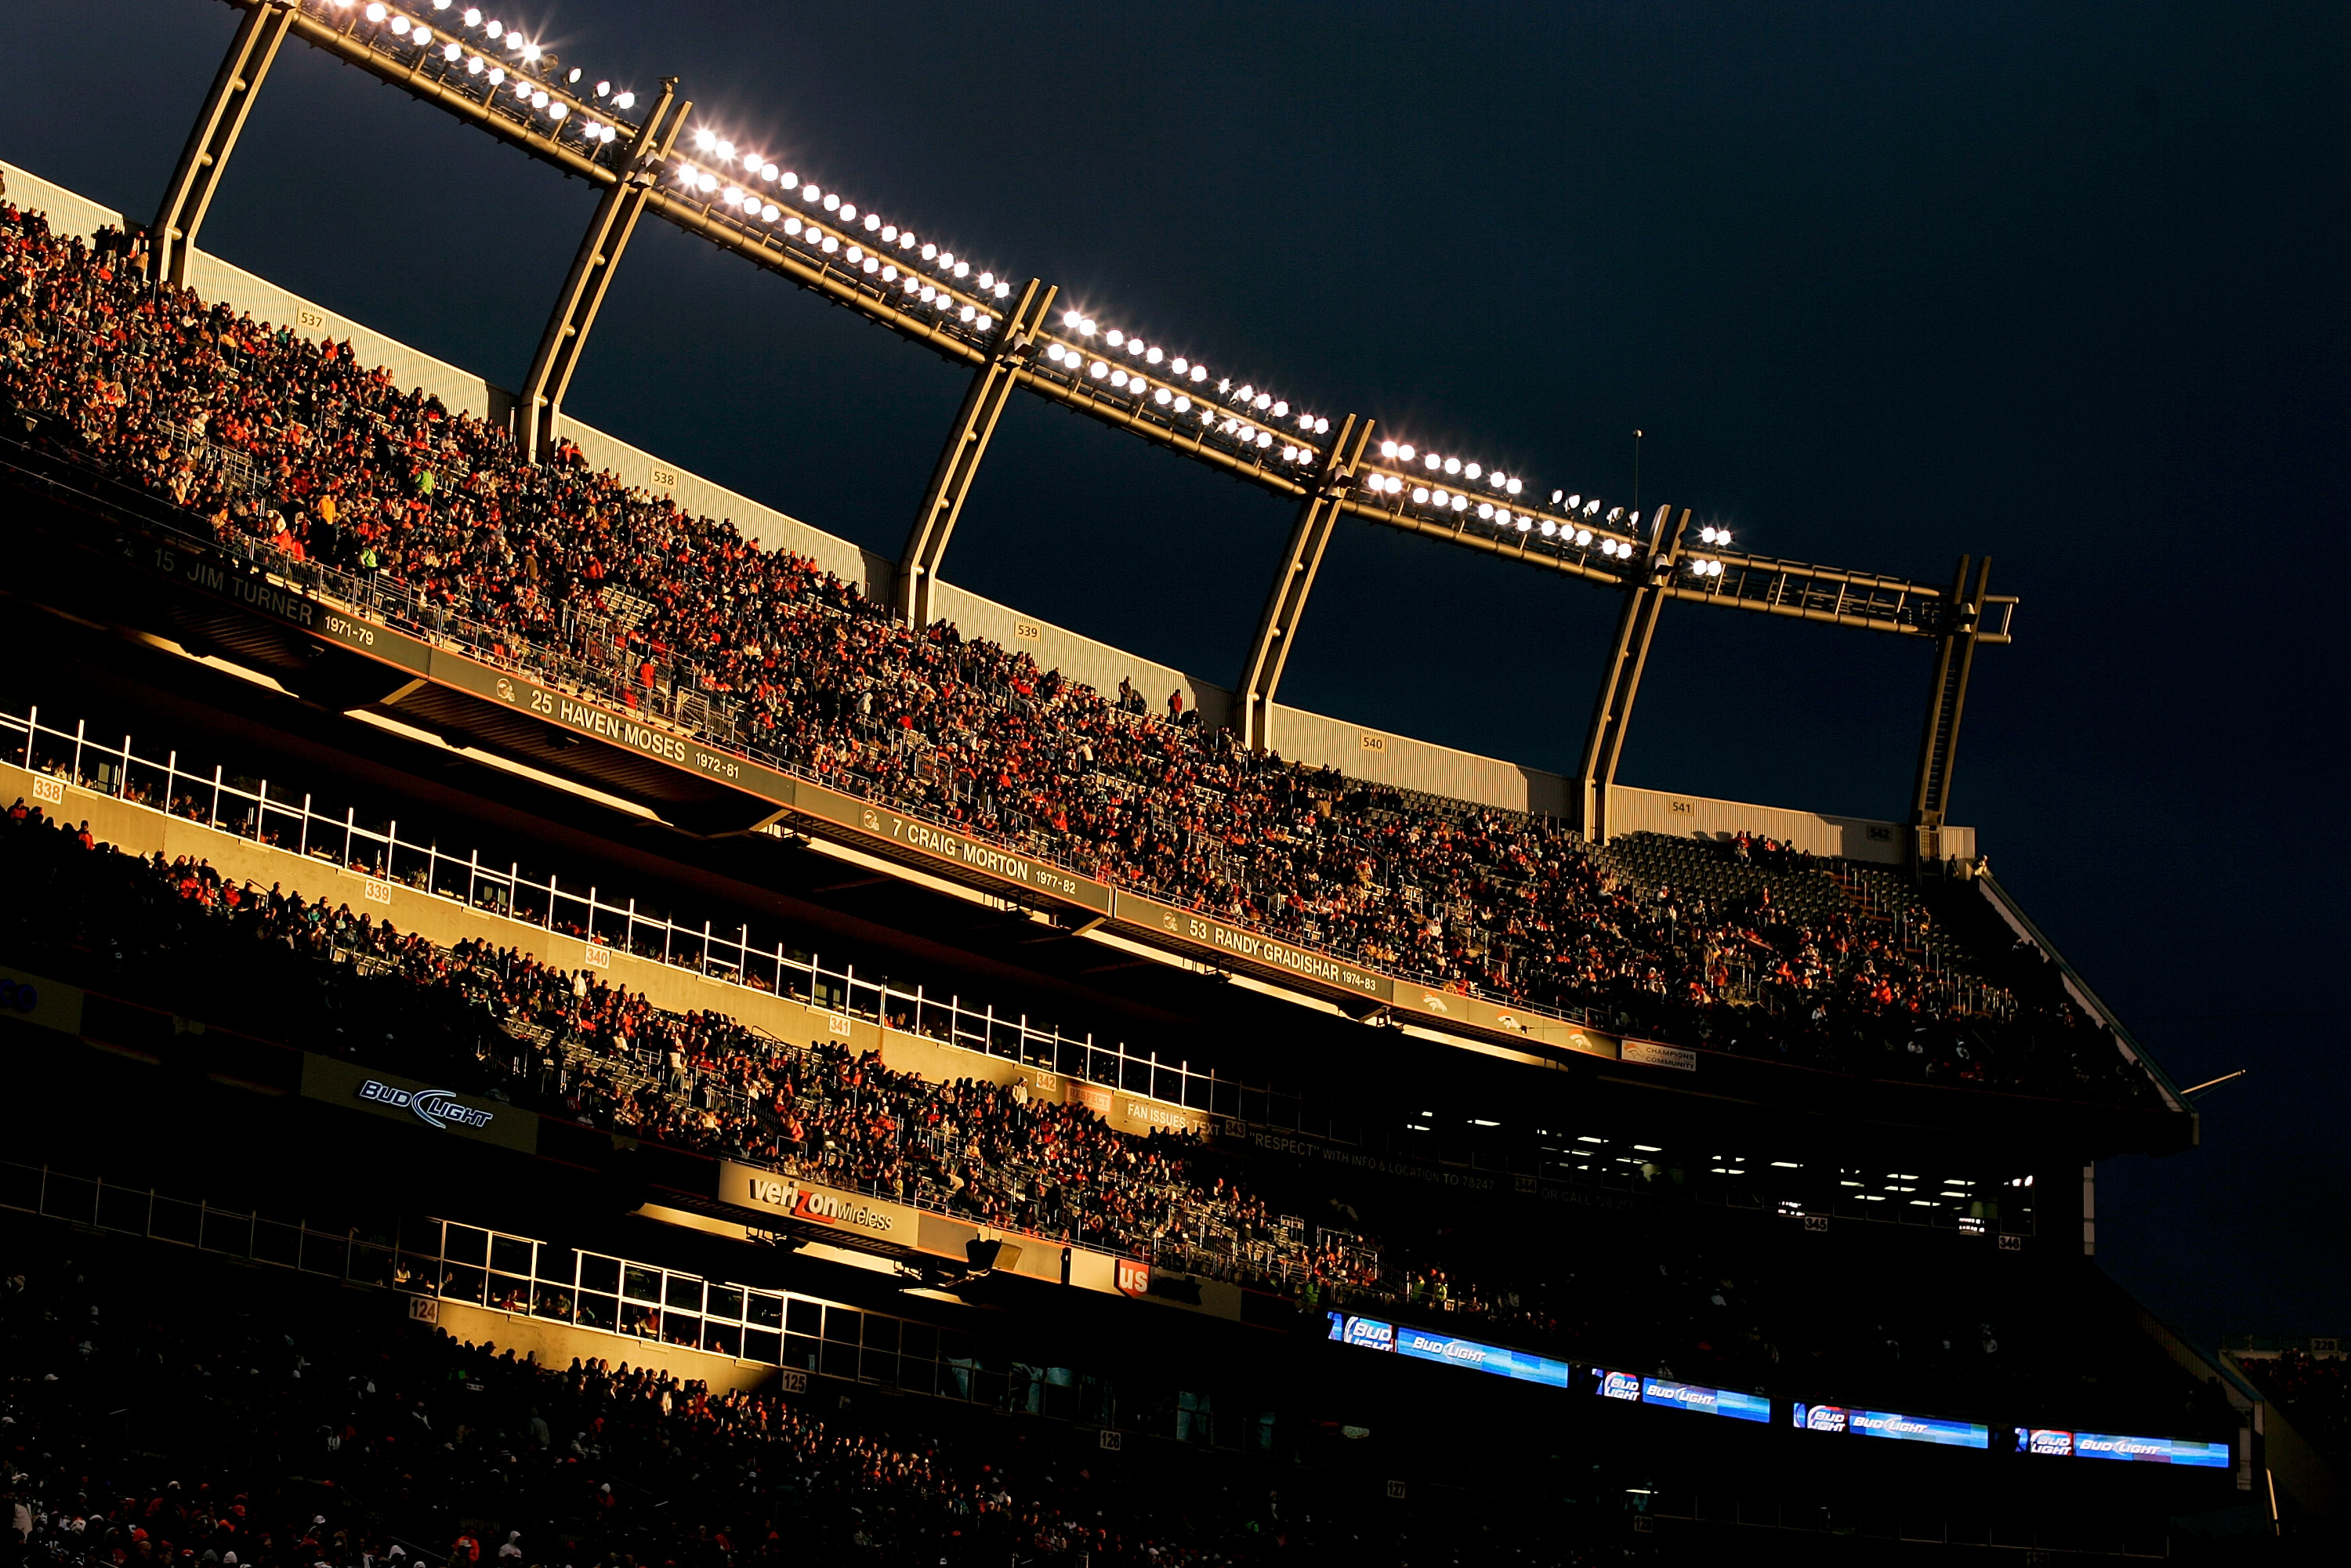 DENVER - NOVEMBER 28:  The sun illuminates a portion of the east stands in the third quarter of an NFL game between the St. Louis Rams and Denver Broncos at INVESCO Field at Mile High on November 28, 2010 in Denver, Colorado. The Rams defeated the Broncos